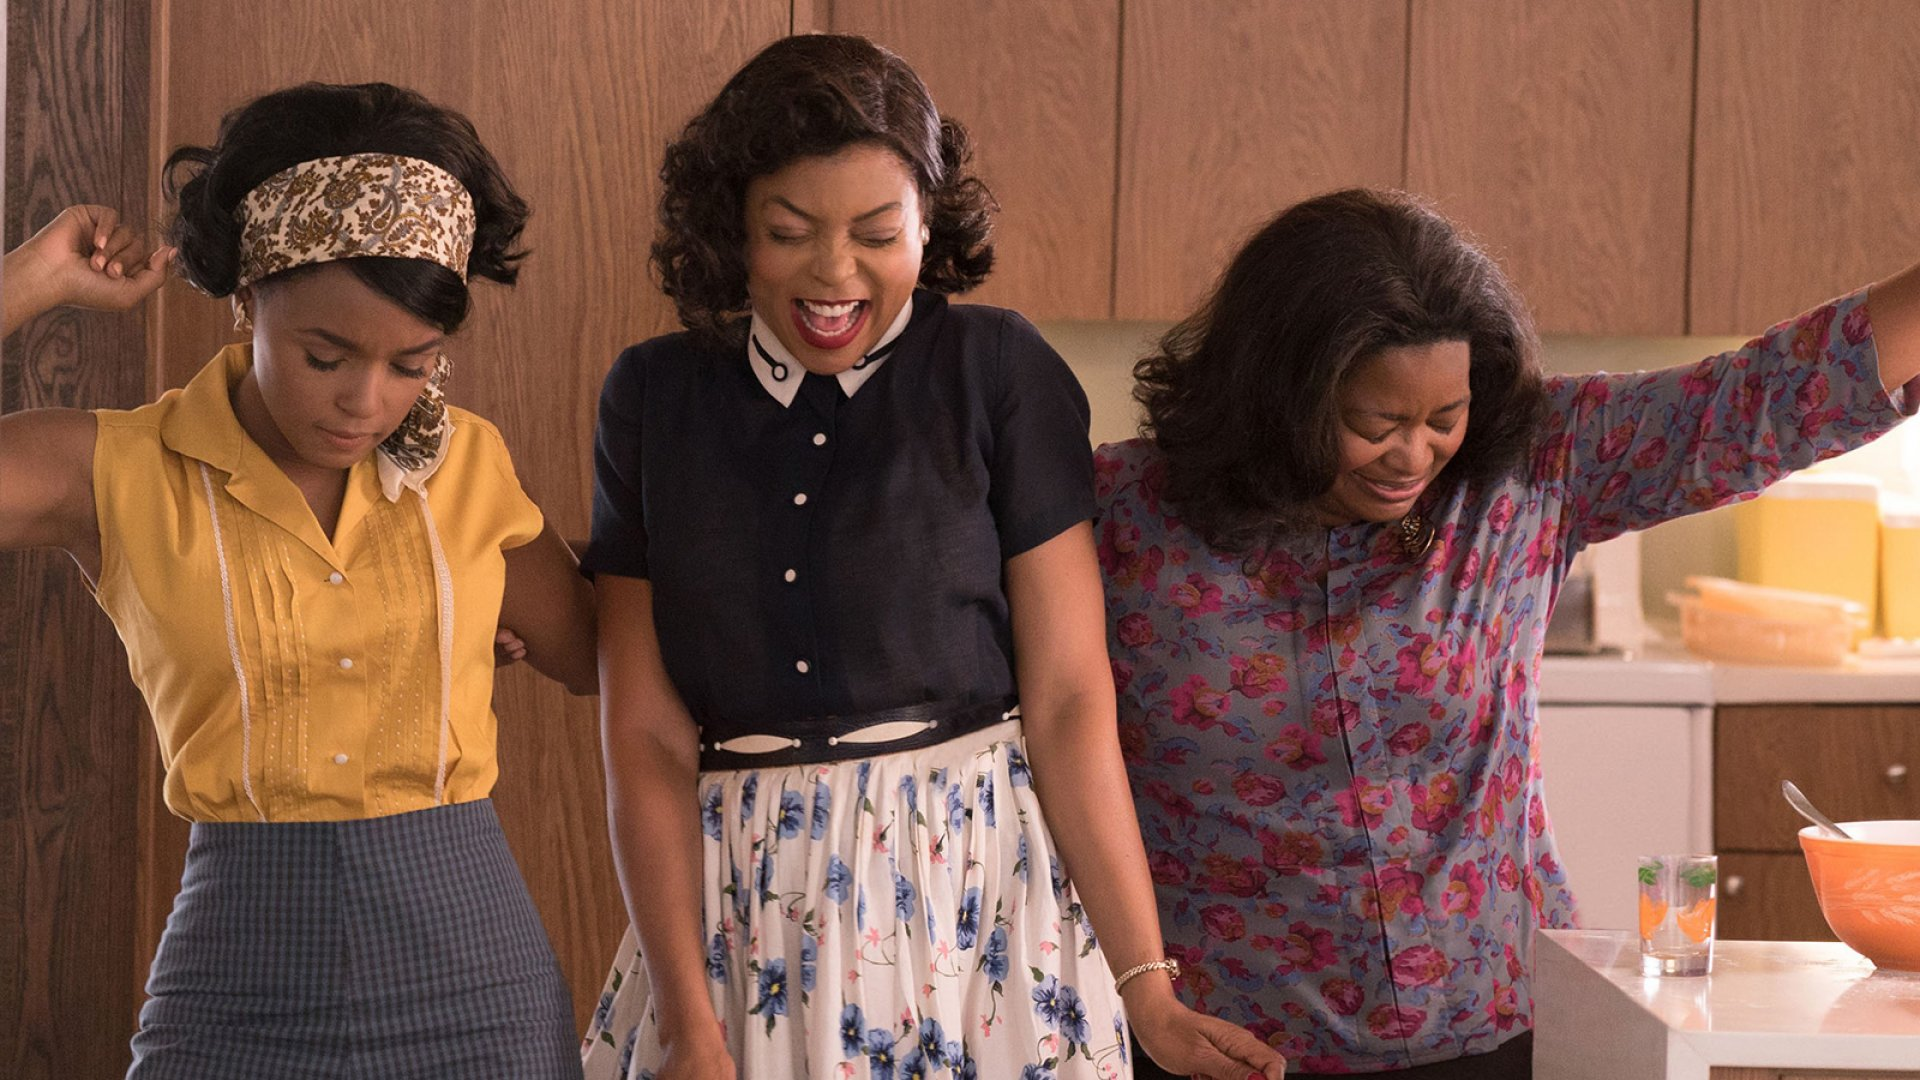 Hidden Figures Tells the Story About Black Women in Tech We Need